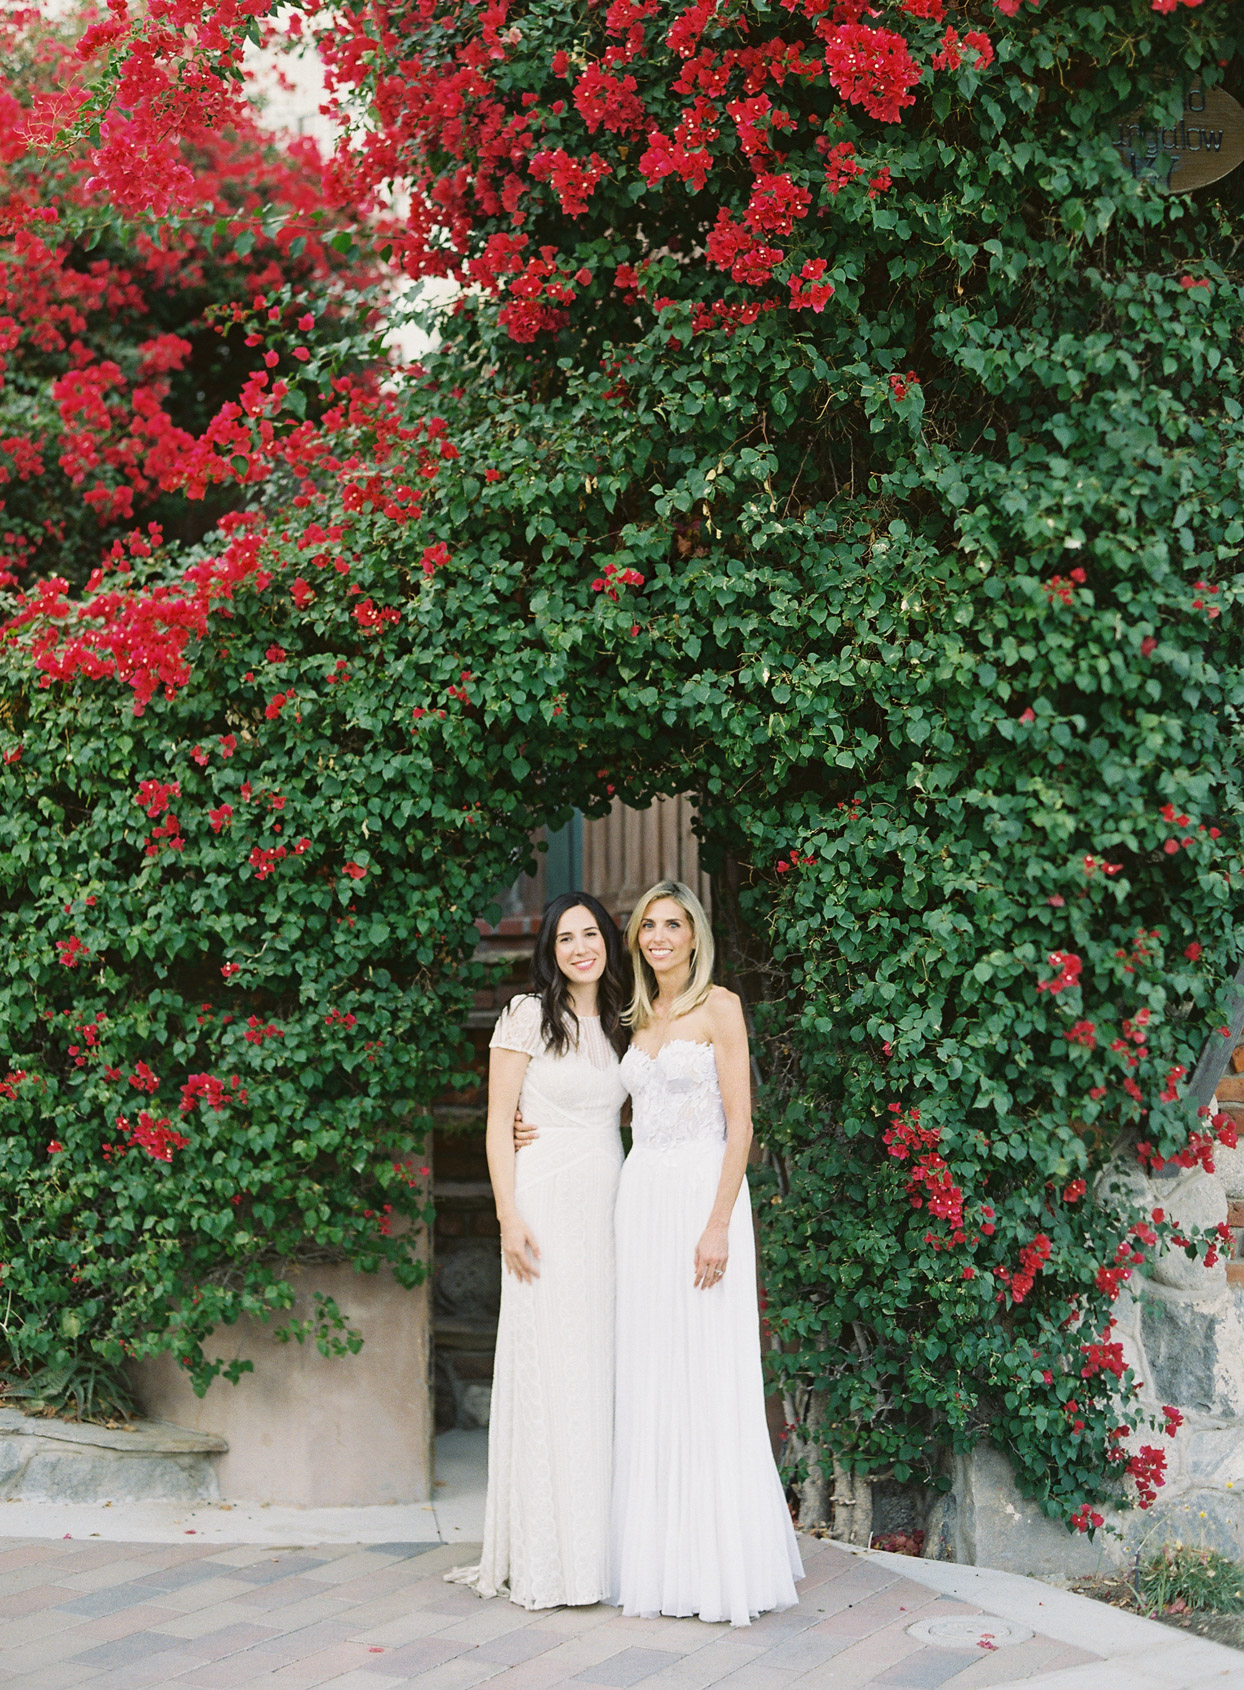 wedding couple posing under greenery wall with red flowers